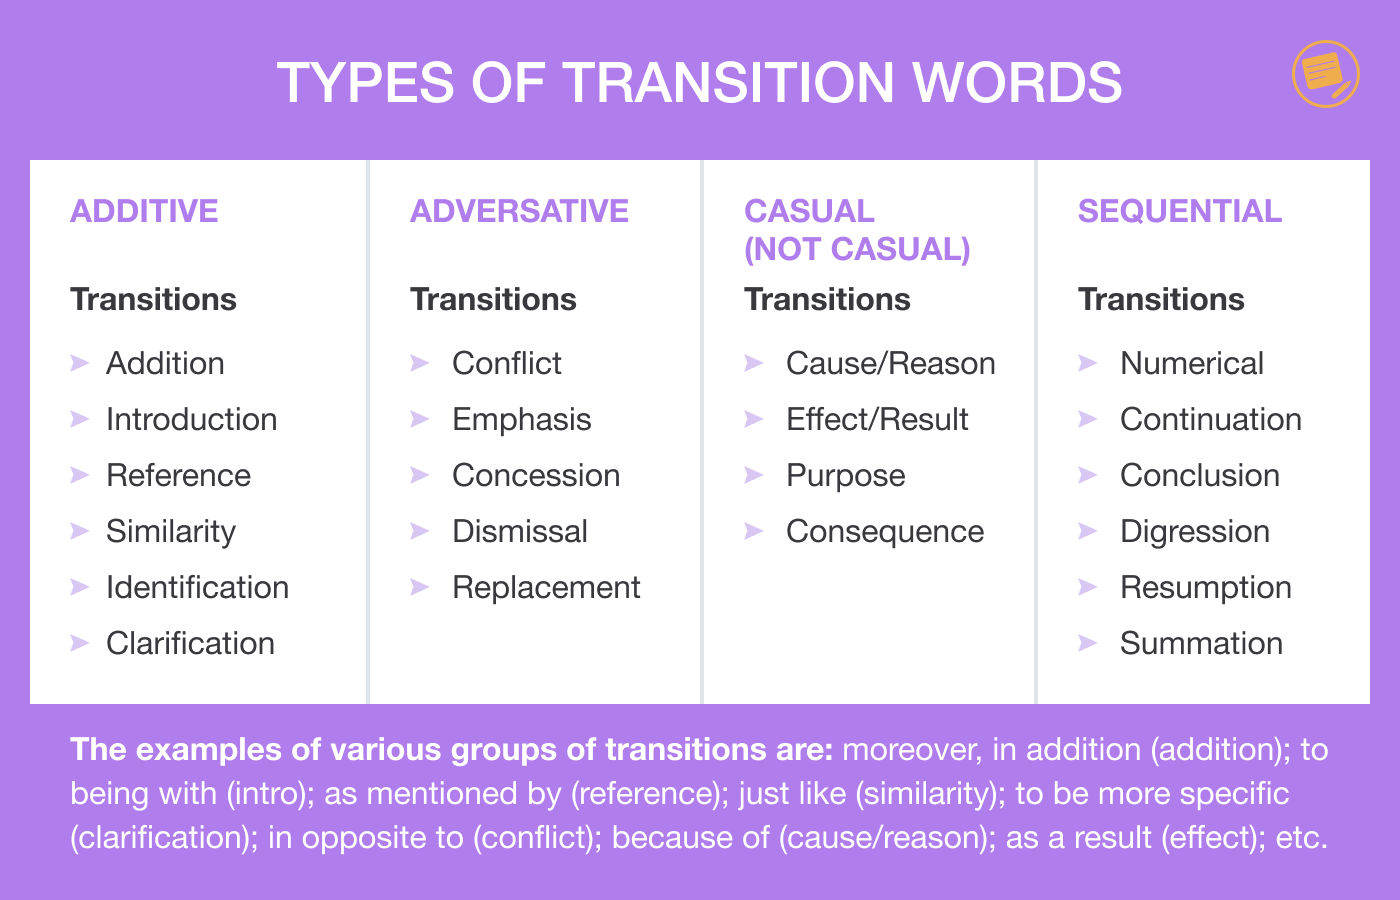 Types-of-Transition-Words